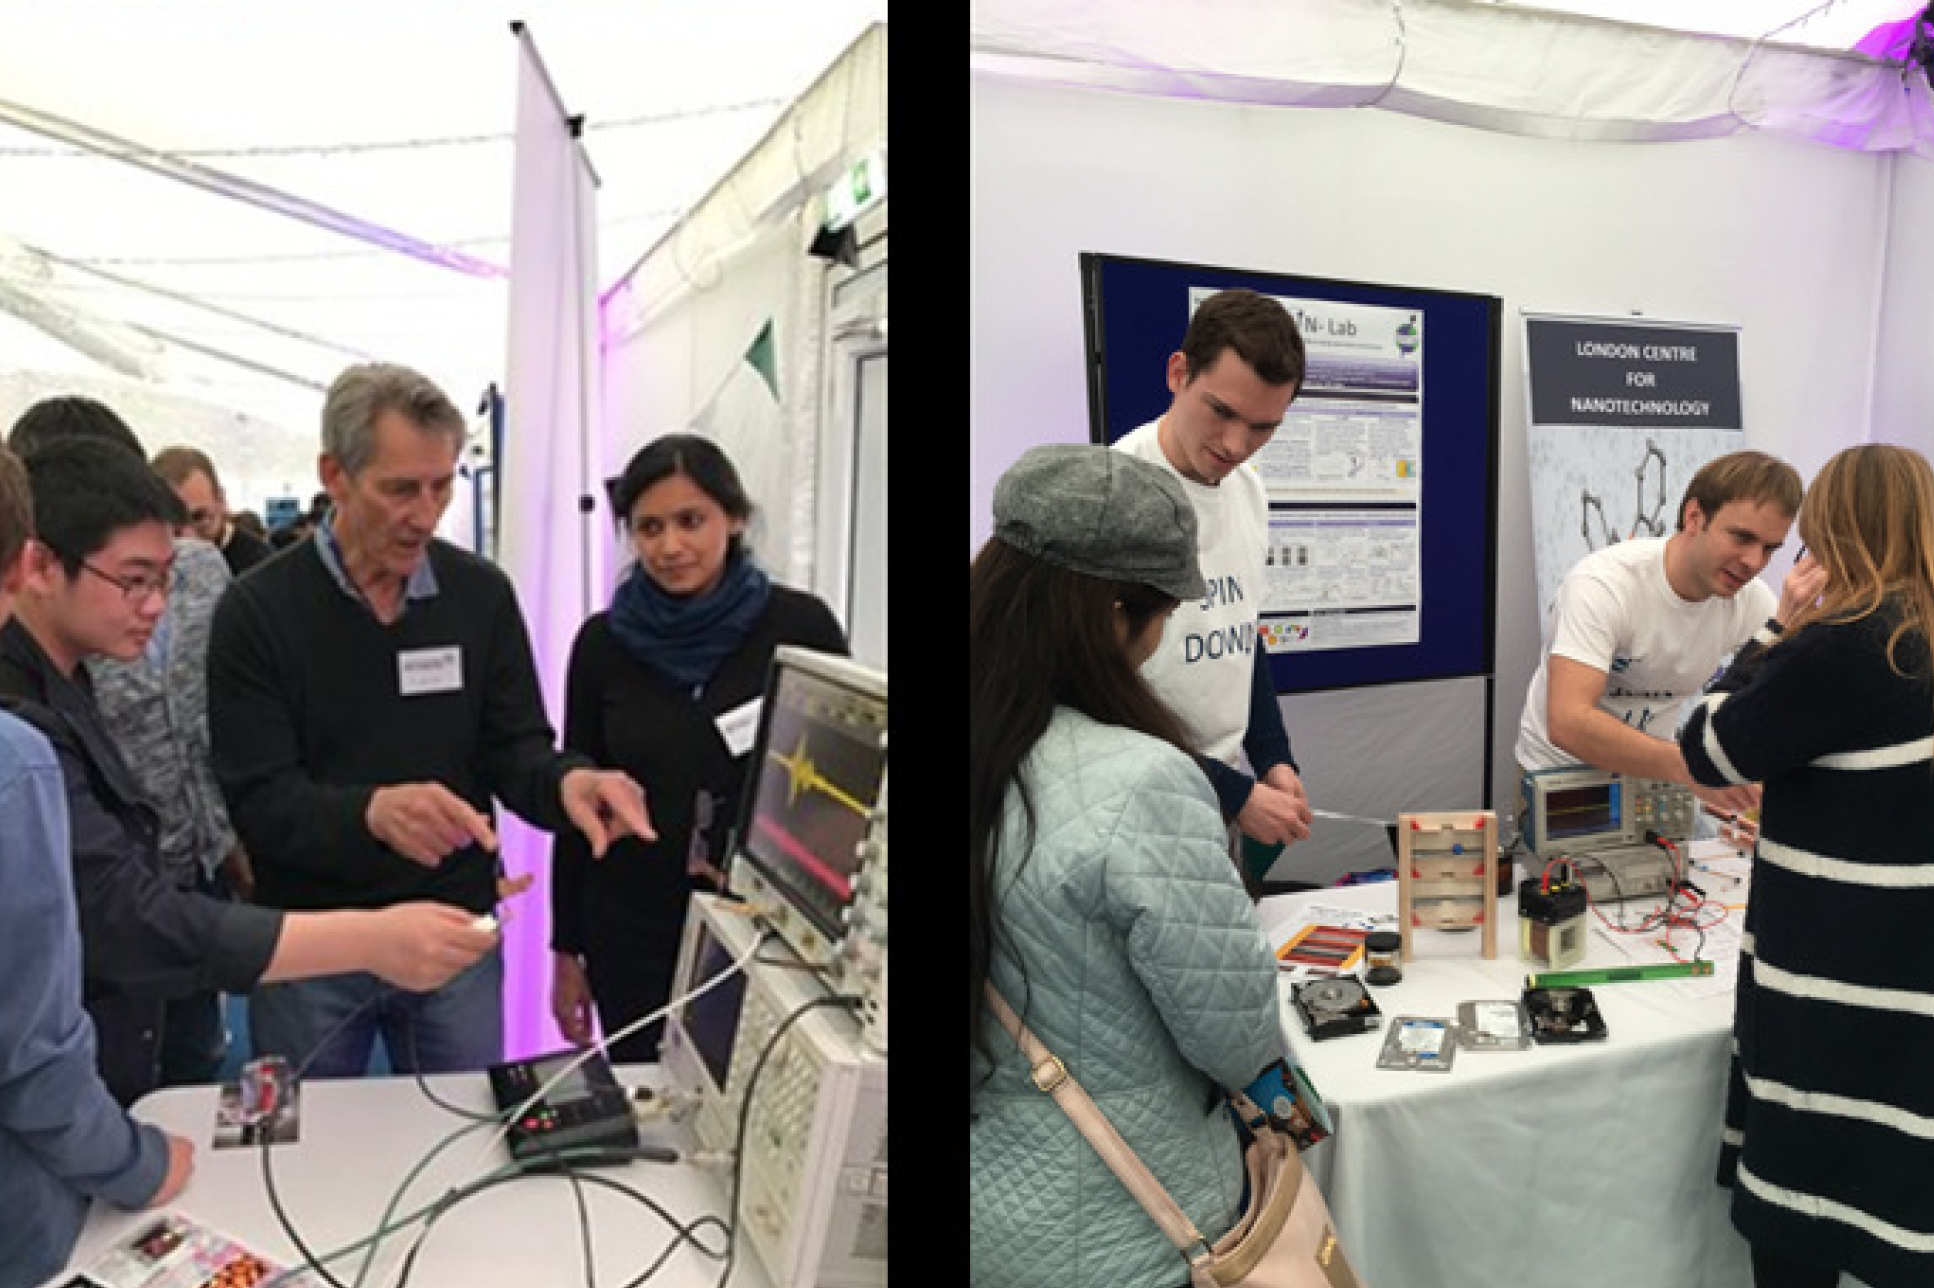 LCN researchers at the Imperial Festival, at the Amazing Masers (left) and SPIN-Lab (right) stands.